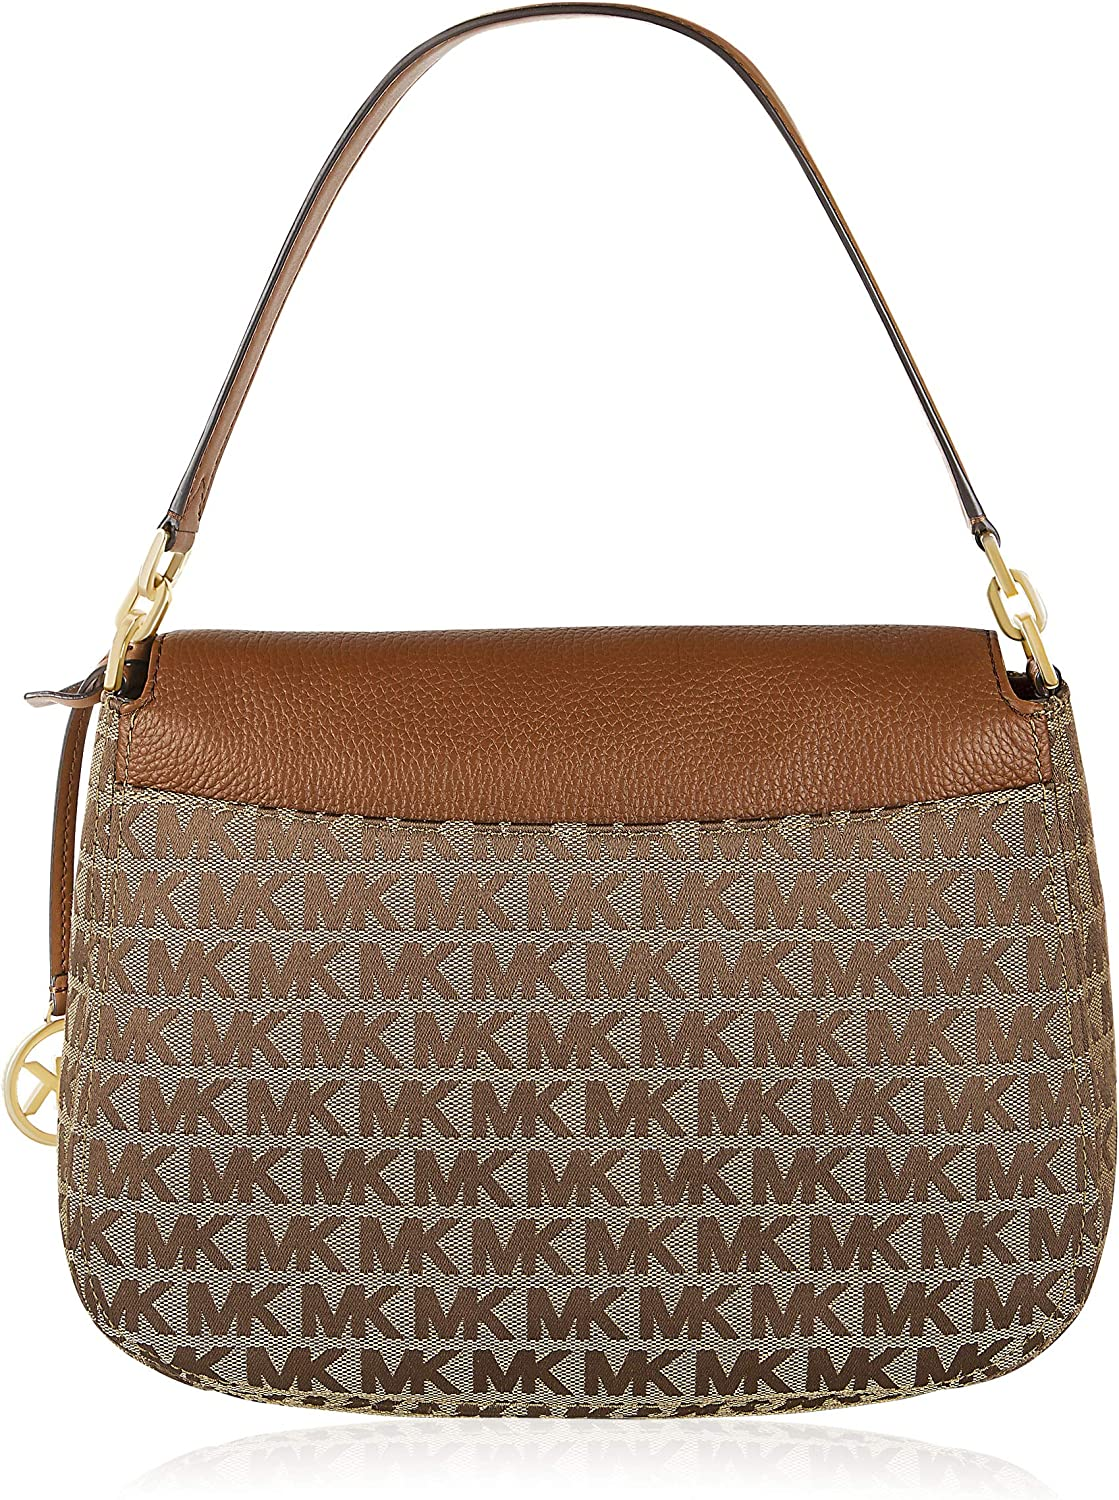 Michael Kors 35T9GBFL2L 230: Amazon.it: Scarpe e borse